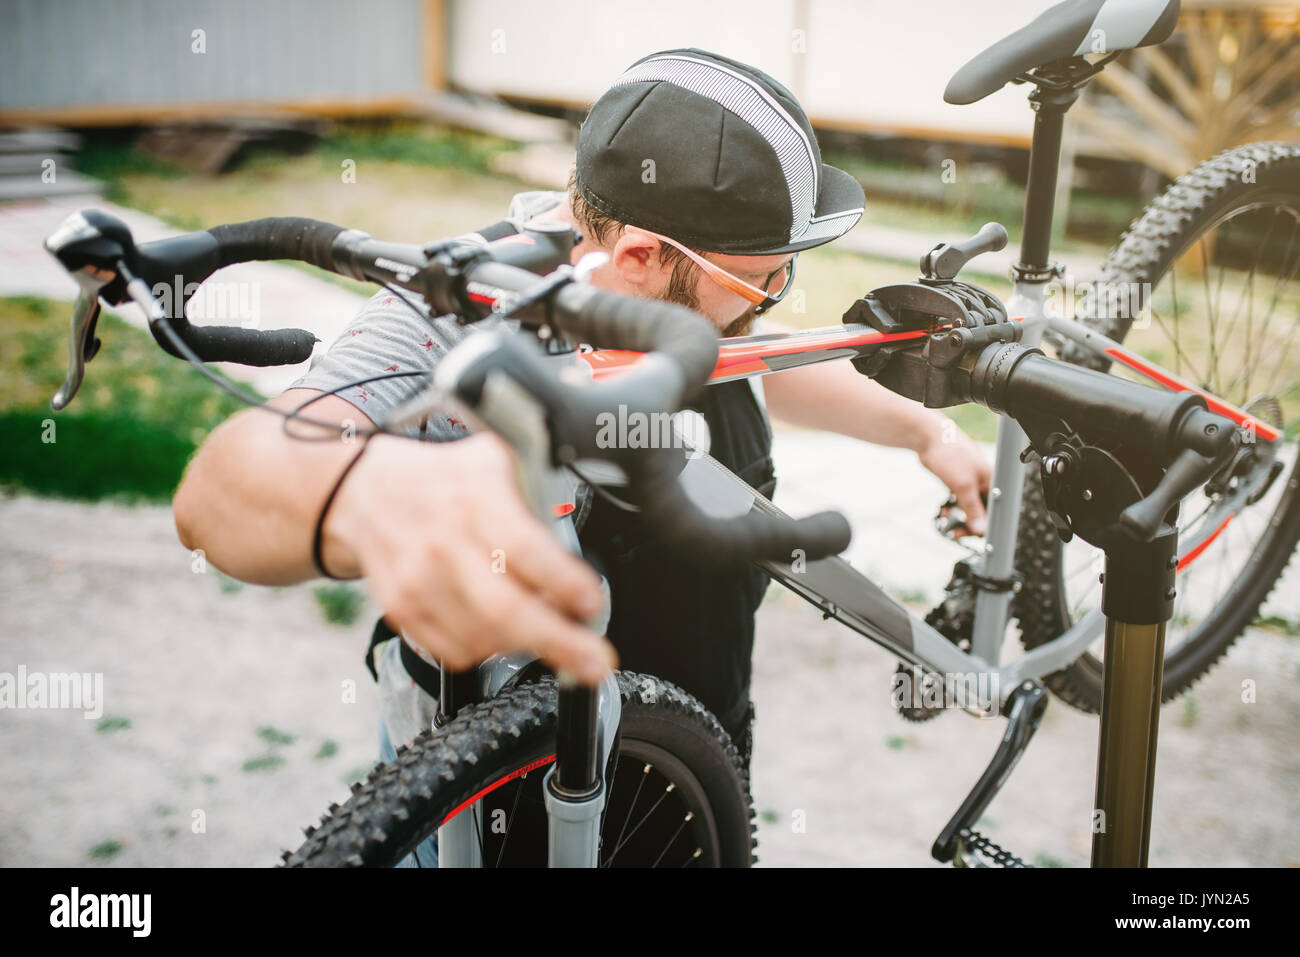 Bicycle mechanic repair bike, top view. Cycle workshop outdoor. Bicycling sport, bearded service man work with wheel - Stock Image